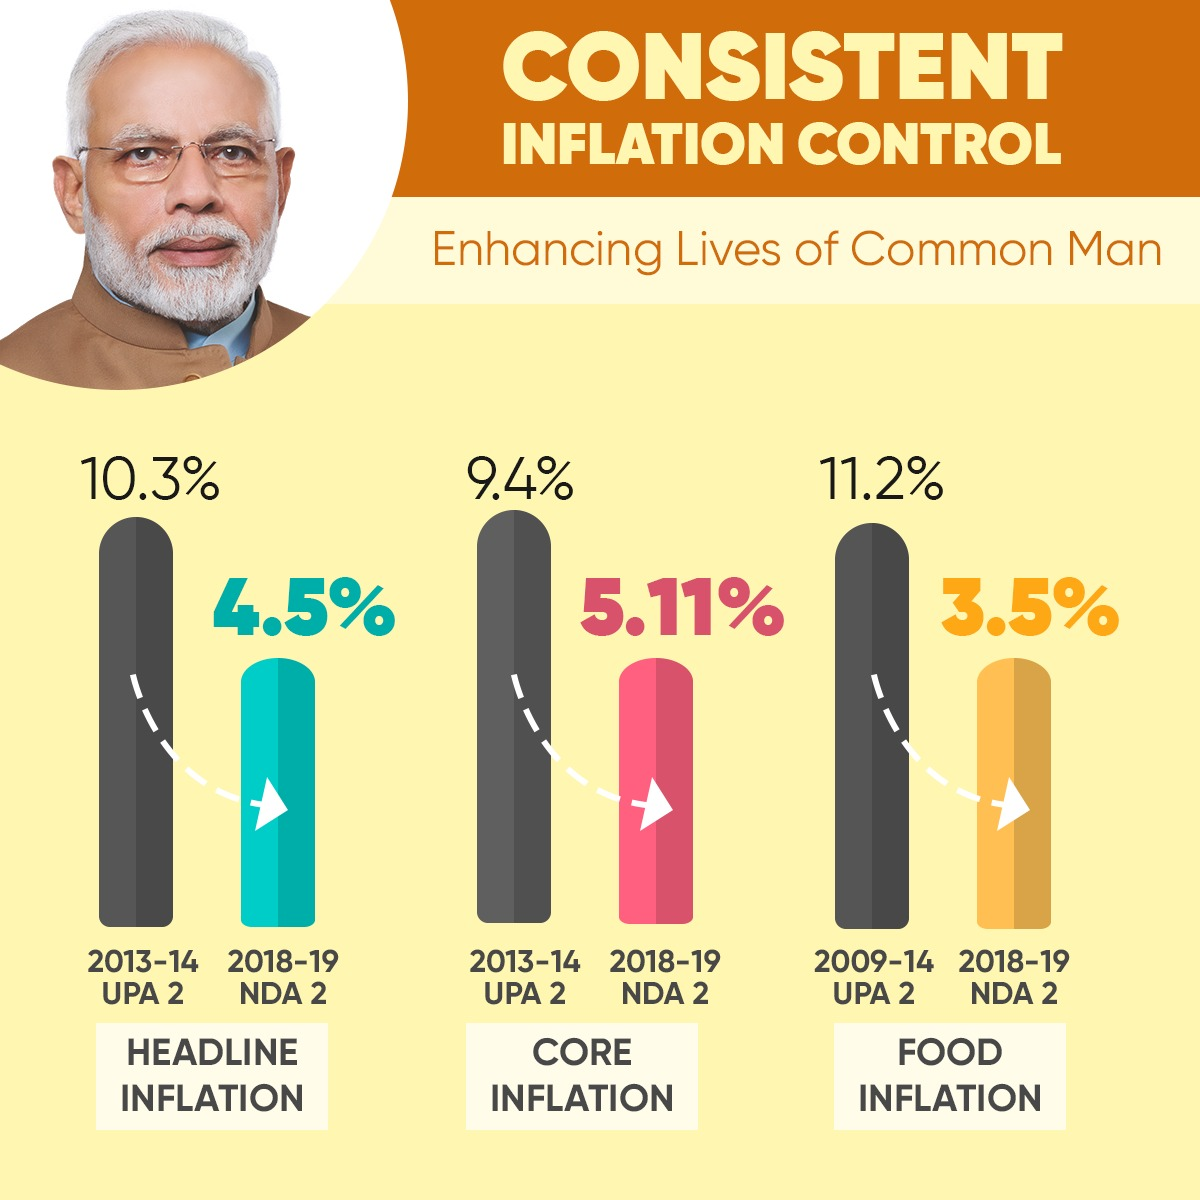 @nsitharaman @BJP4India @BJPLive The Narendra Modi government has consistently and successfully kept inflation under control.